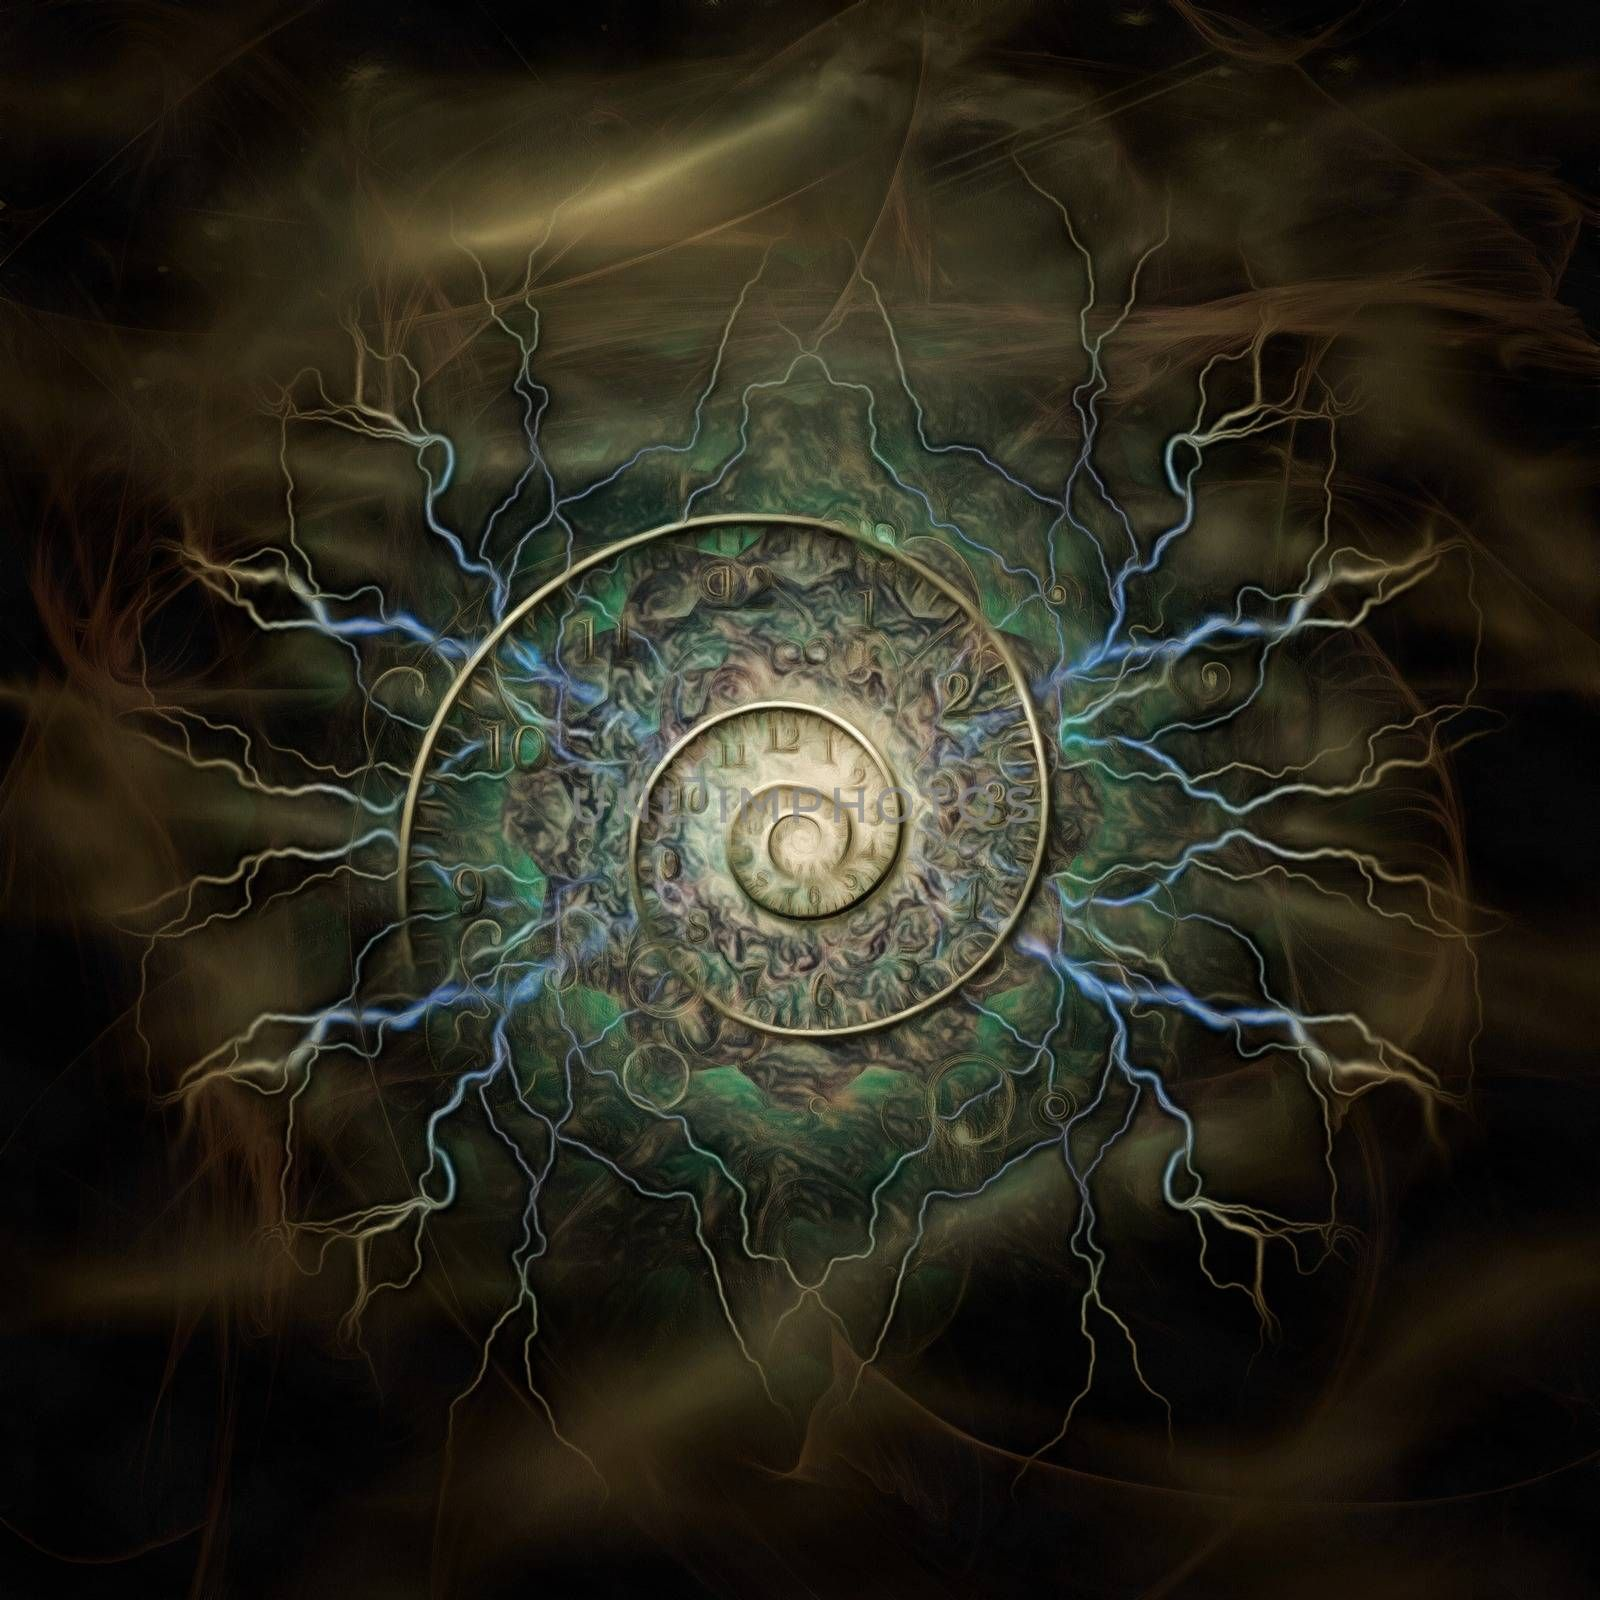 Surreal painting. Spiral of time and lightnings. 3D rendering